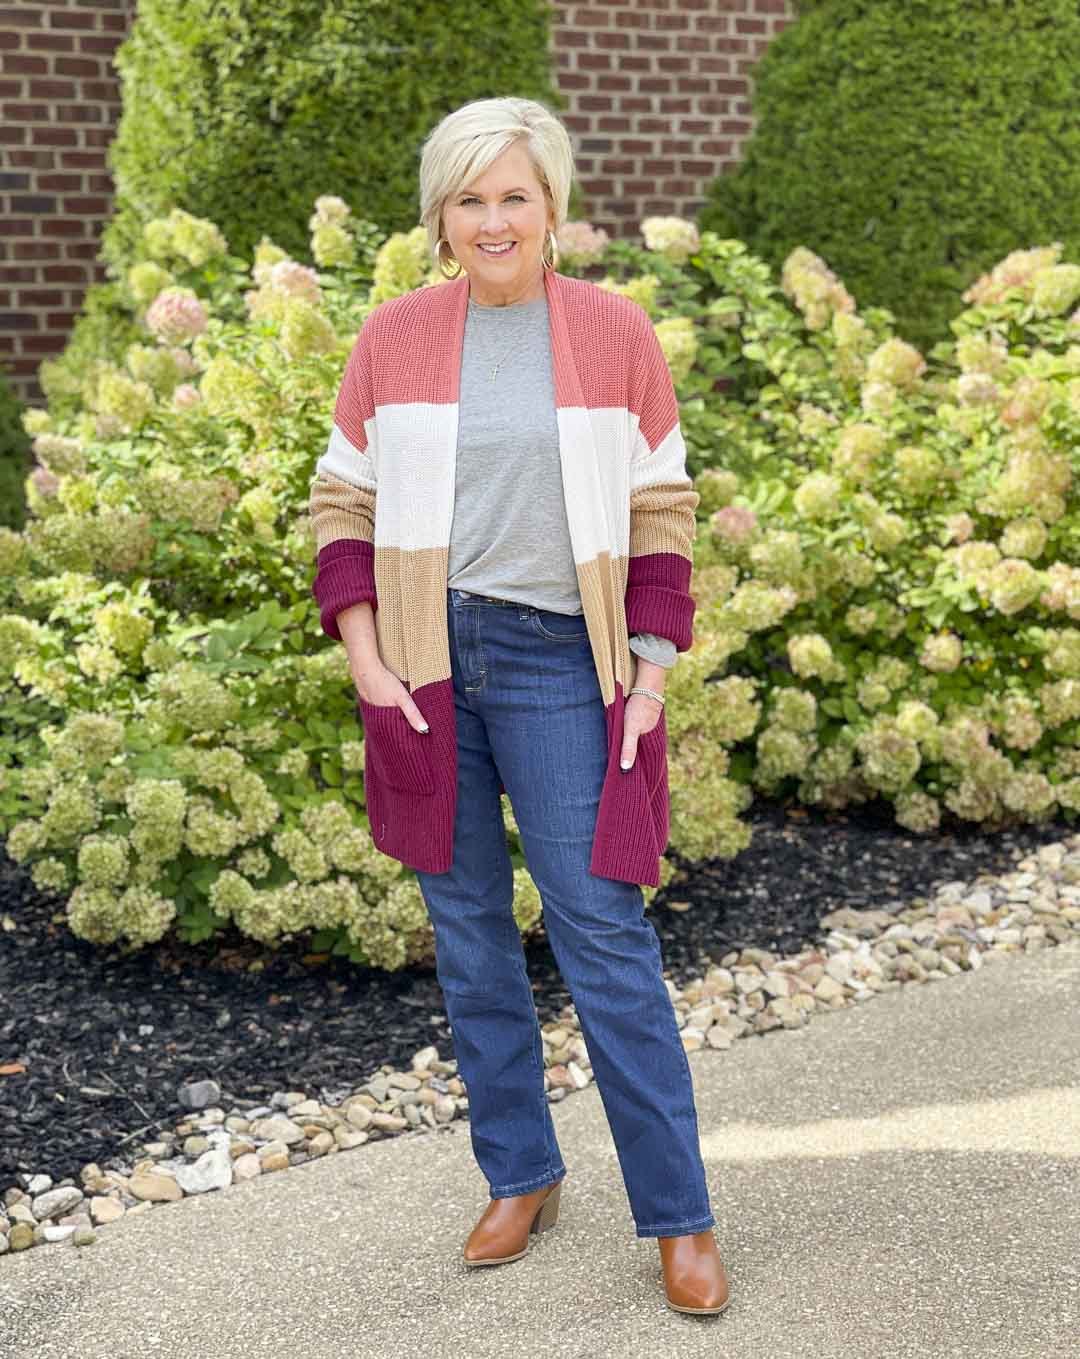 Over 40 Fashion Blogger, Tania Stephens, is showing her recent Walmart haul including this color blocked cardigan, bootcut jeans, and faux leather ankle boots